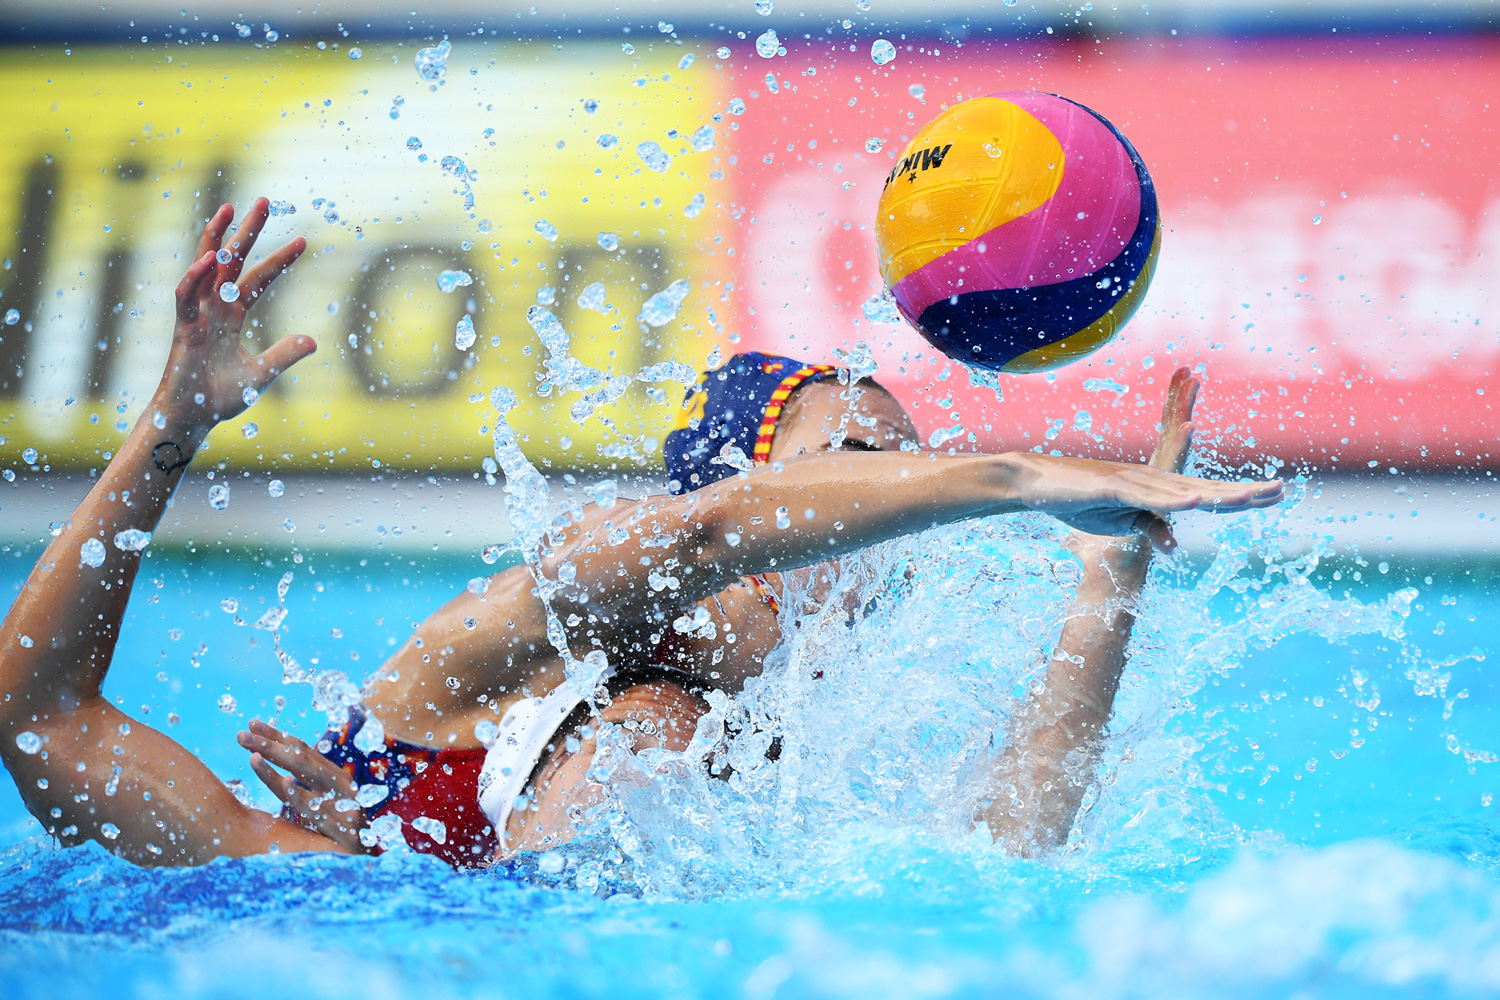 Spain Wins 2020 European Women's Water Polo Championship; Men Play for Double Gold Sunday versus Hungary